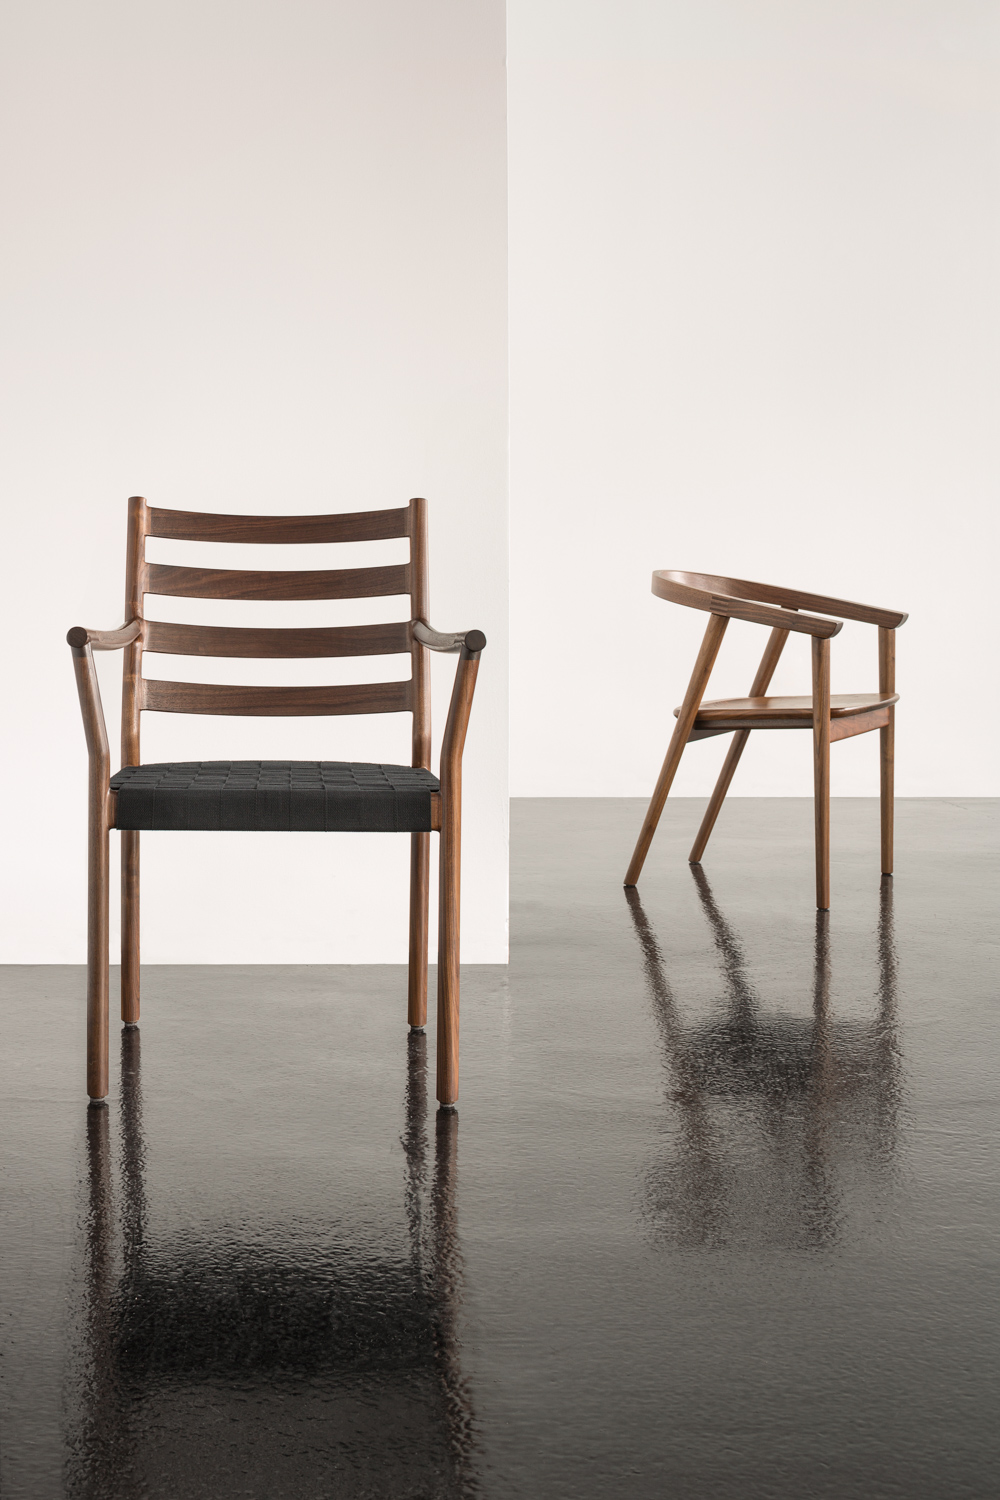 Thos. Moser Chairs